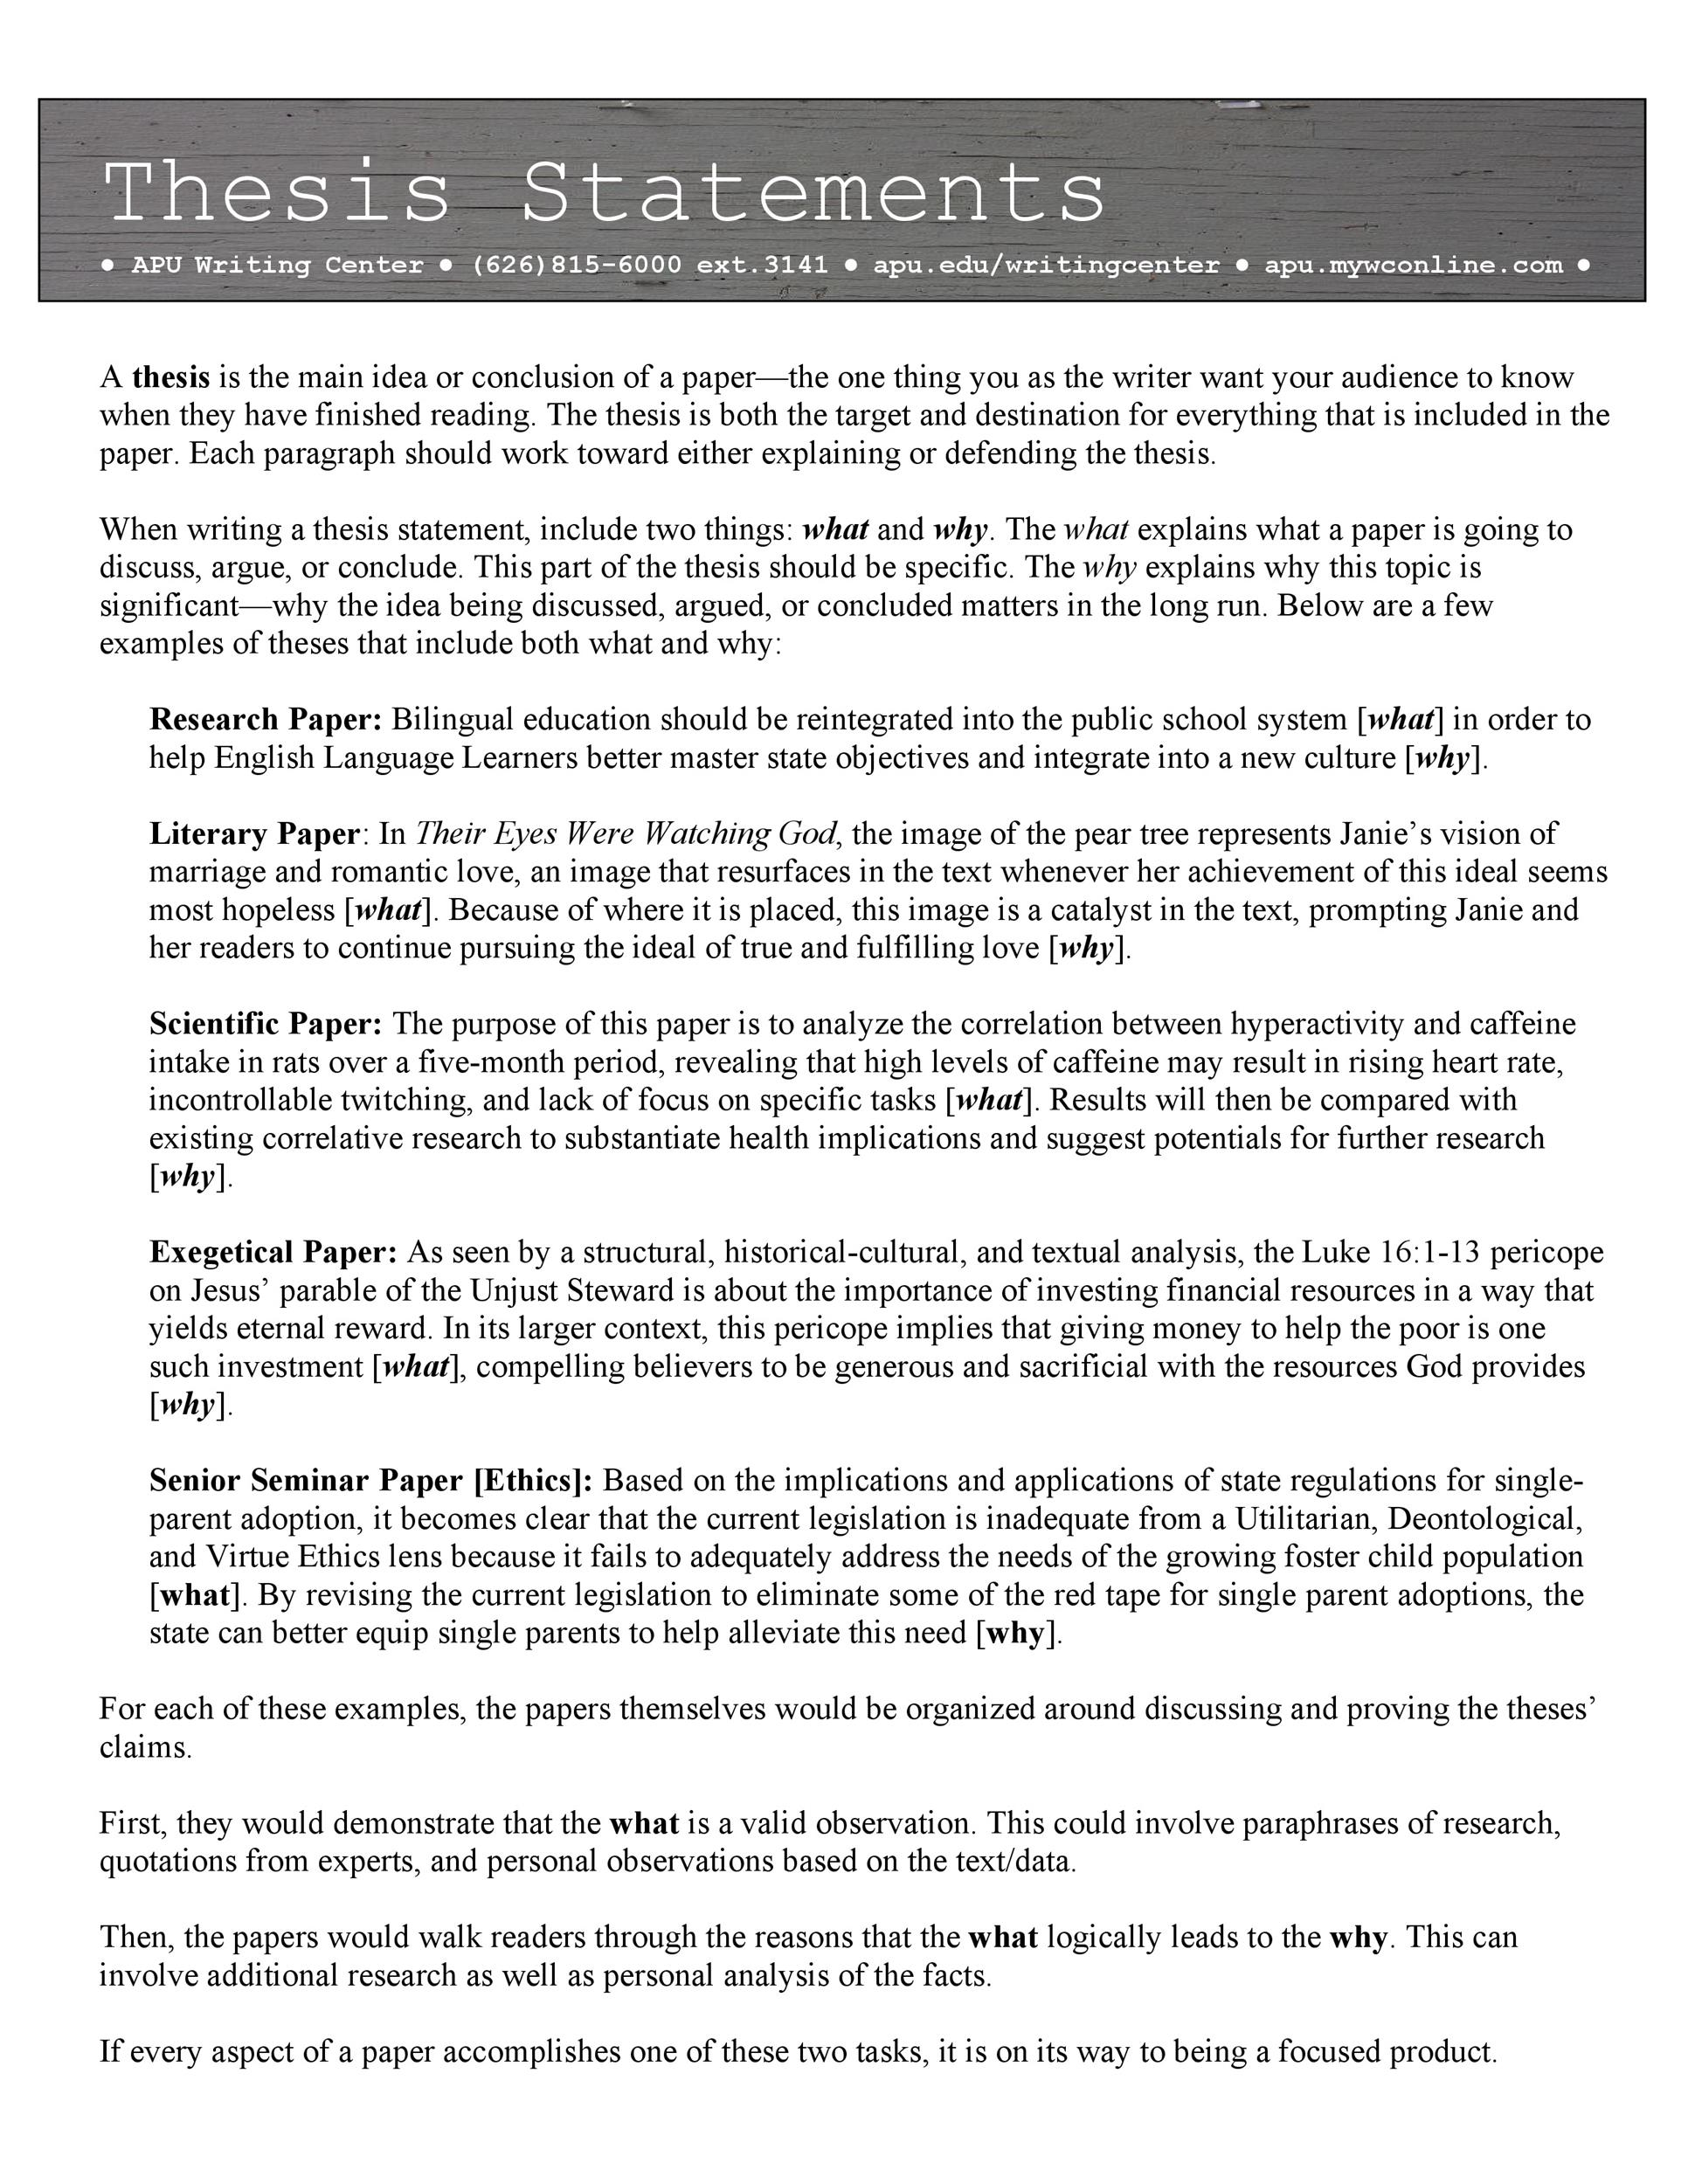 Free thesis statement template 38